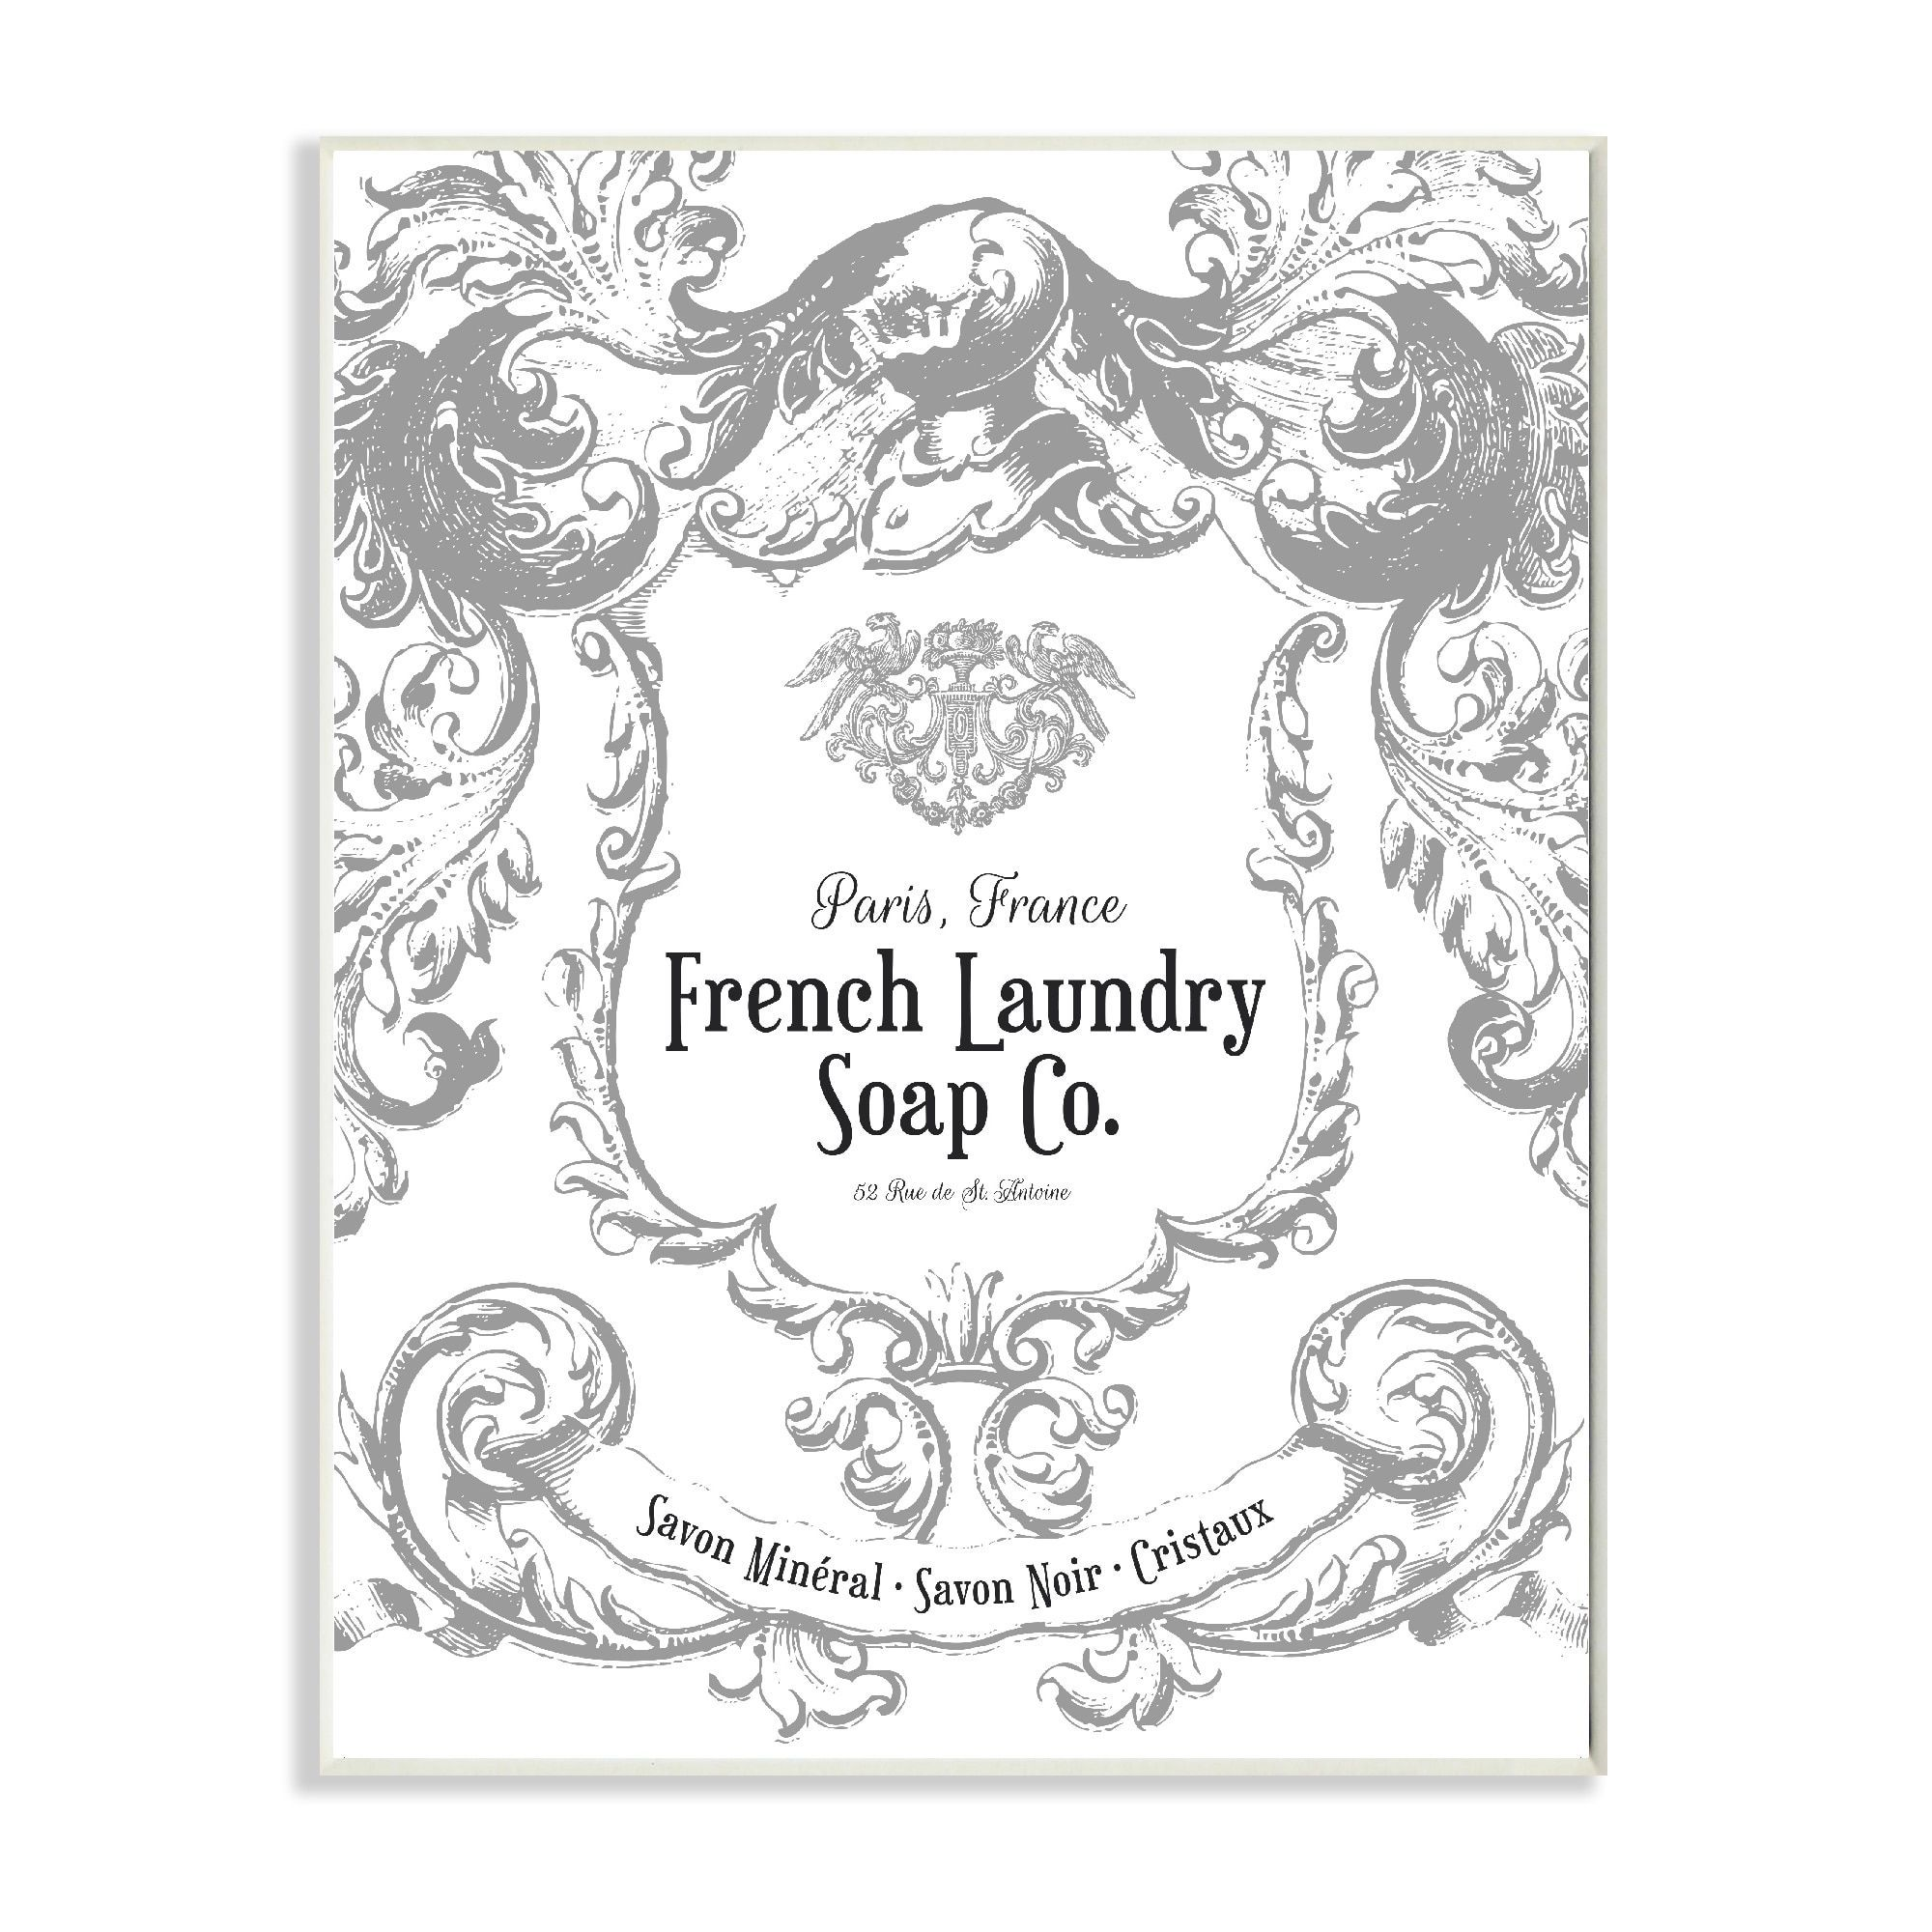 french type pays quilt travel homage laundry script design written classic pin with set locales pillows dream the this romantic hand passport pillow bedspread to traveled correspondence nods well a of sweet homethreads and